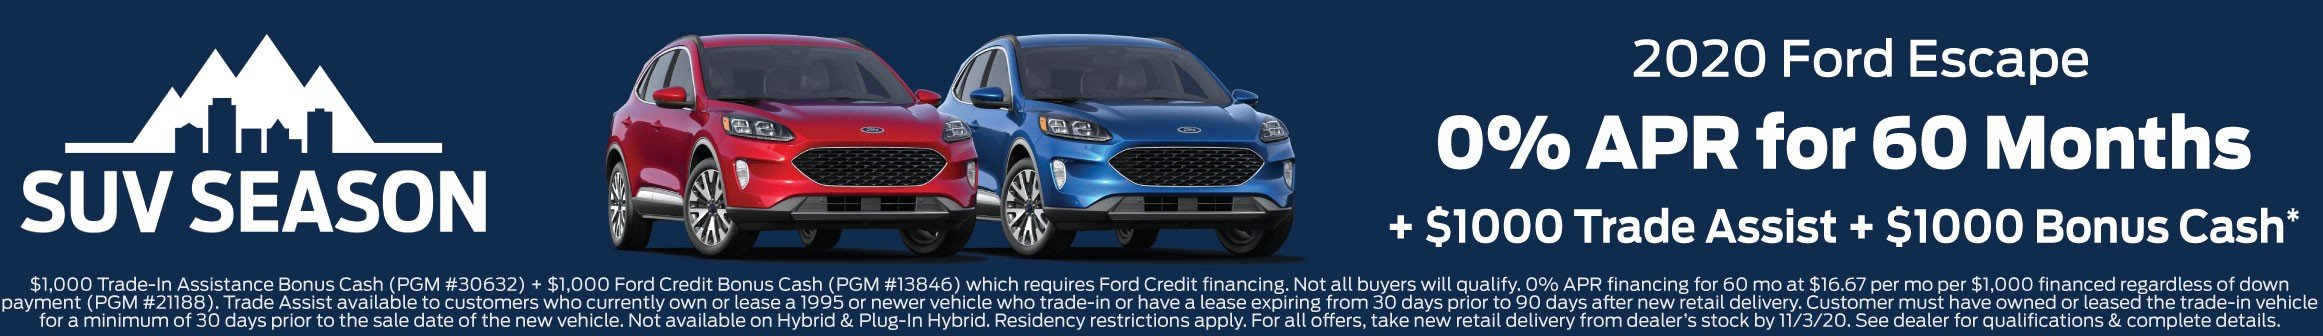 Ford Escape Offer 11-3-2020